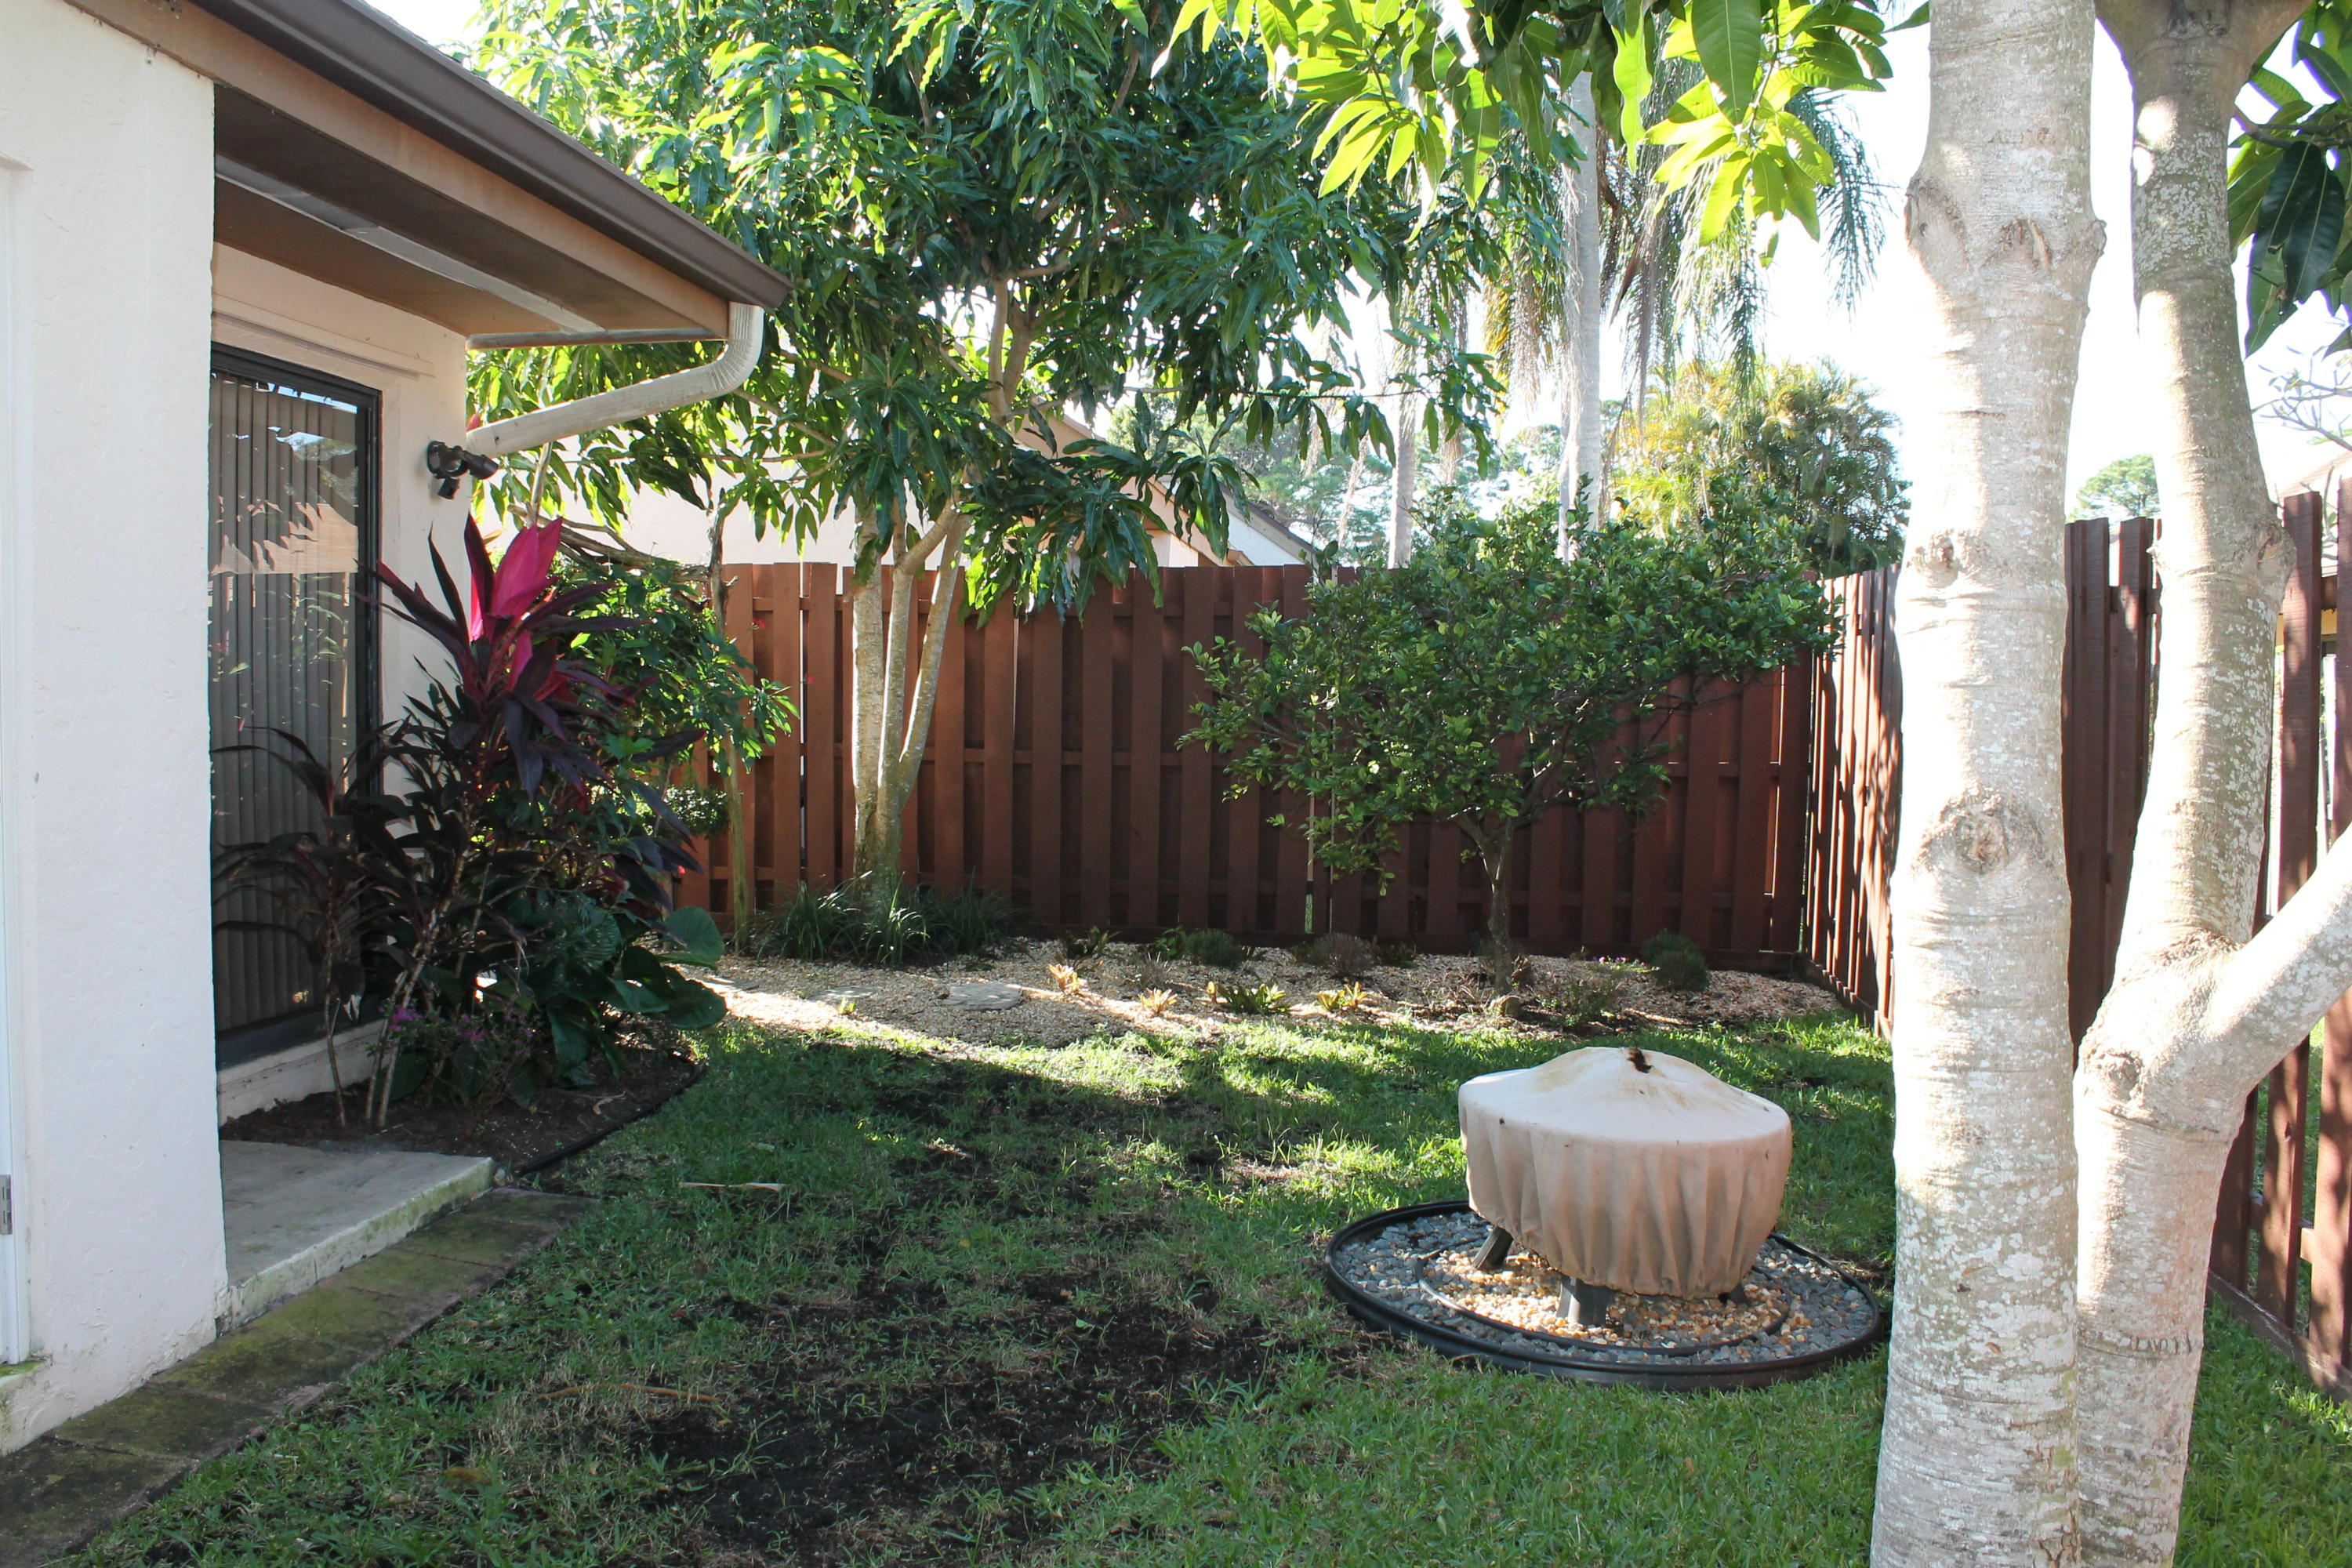 GARDENS OF WOODBERRY PALM BEACH GARDENS REAL ESTATE